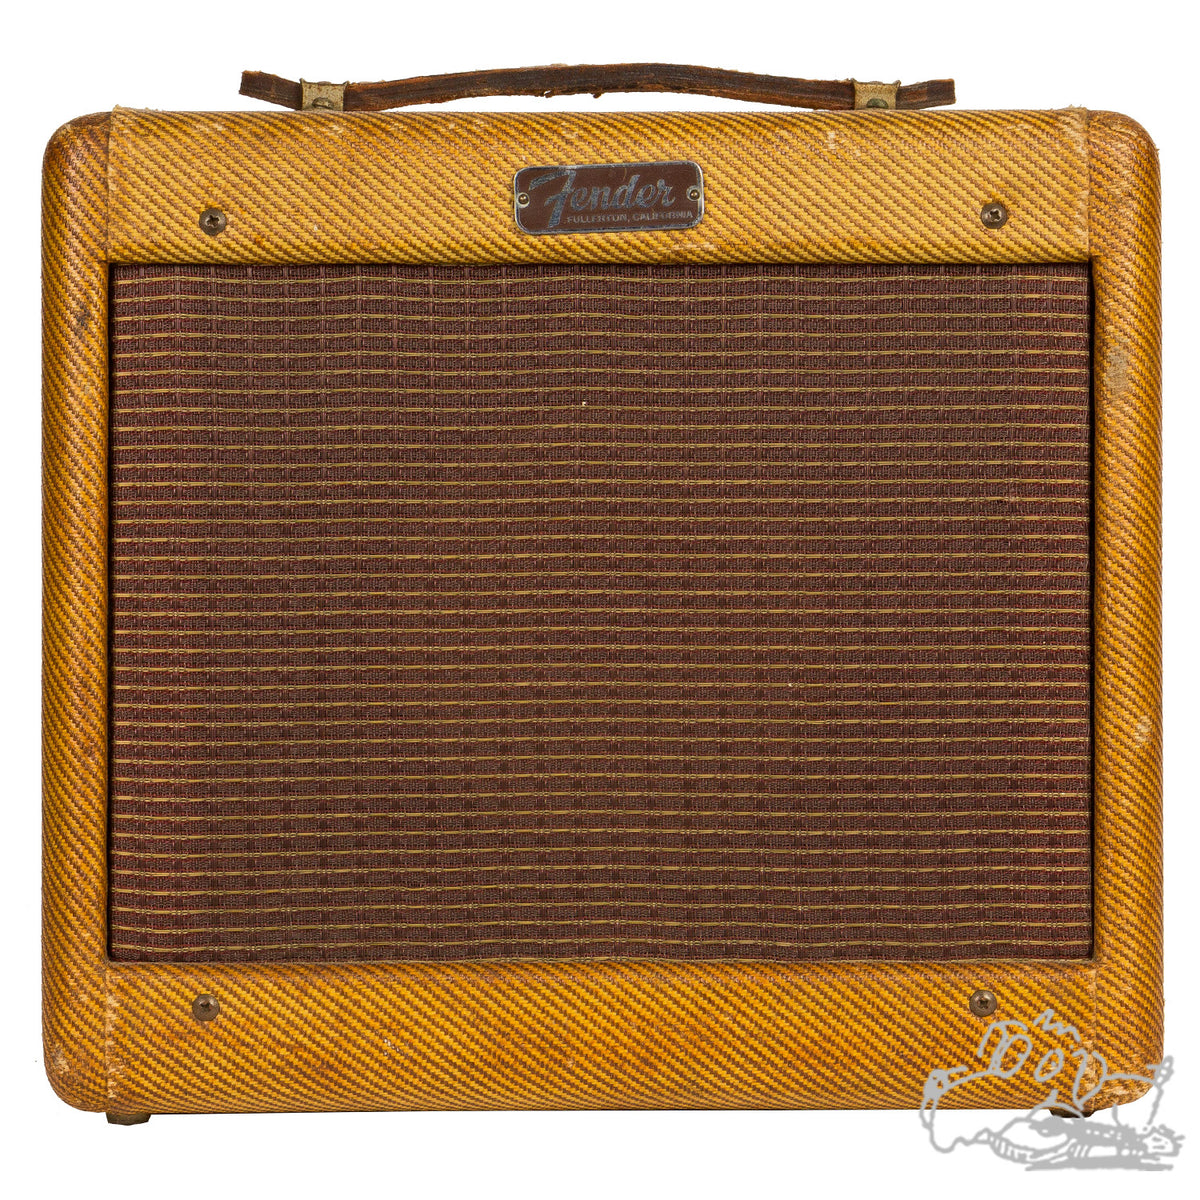 1957 Fender Tweed Champ